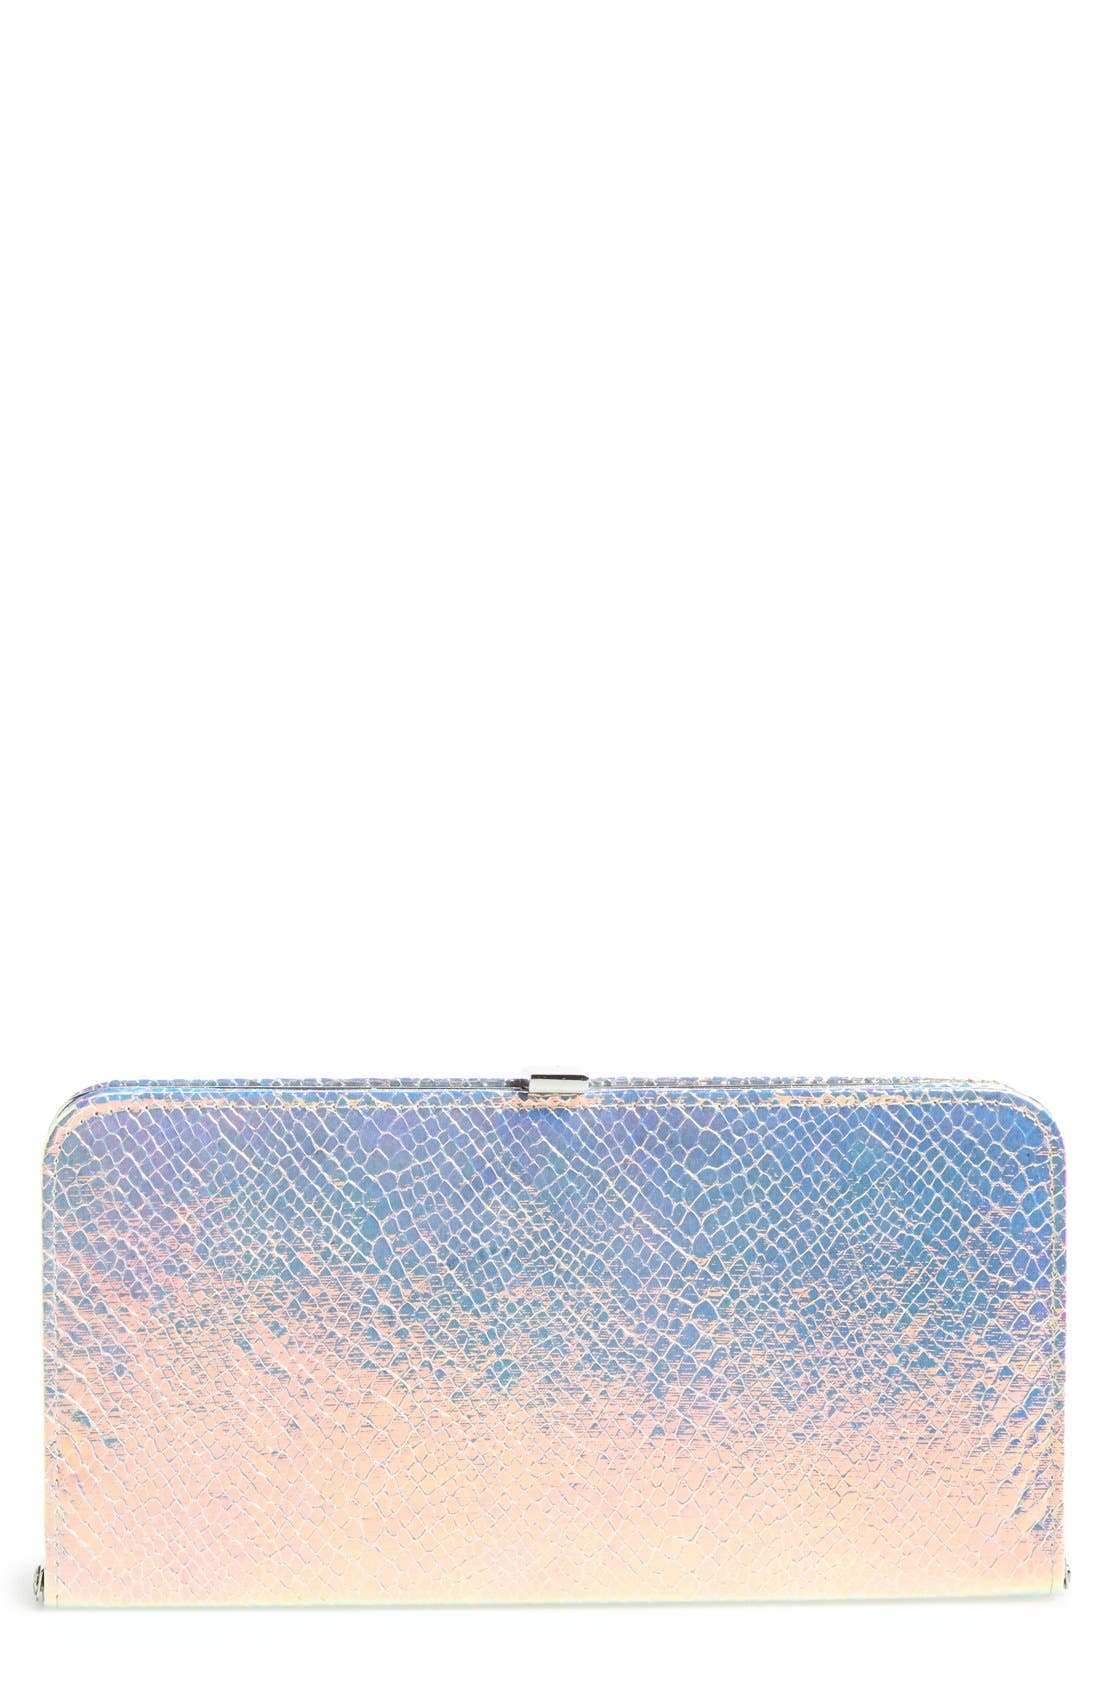 Alternate Image 1 Selected - Dune London 'Boom' Clutch